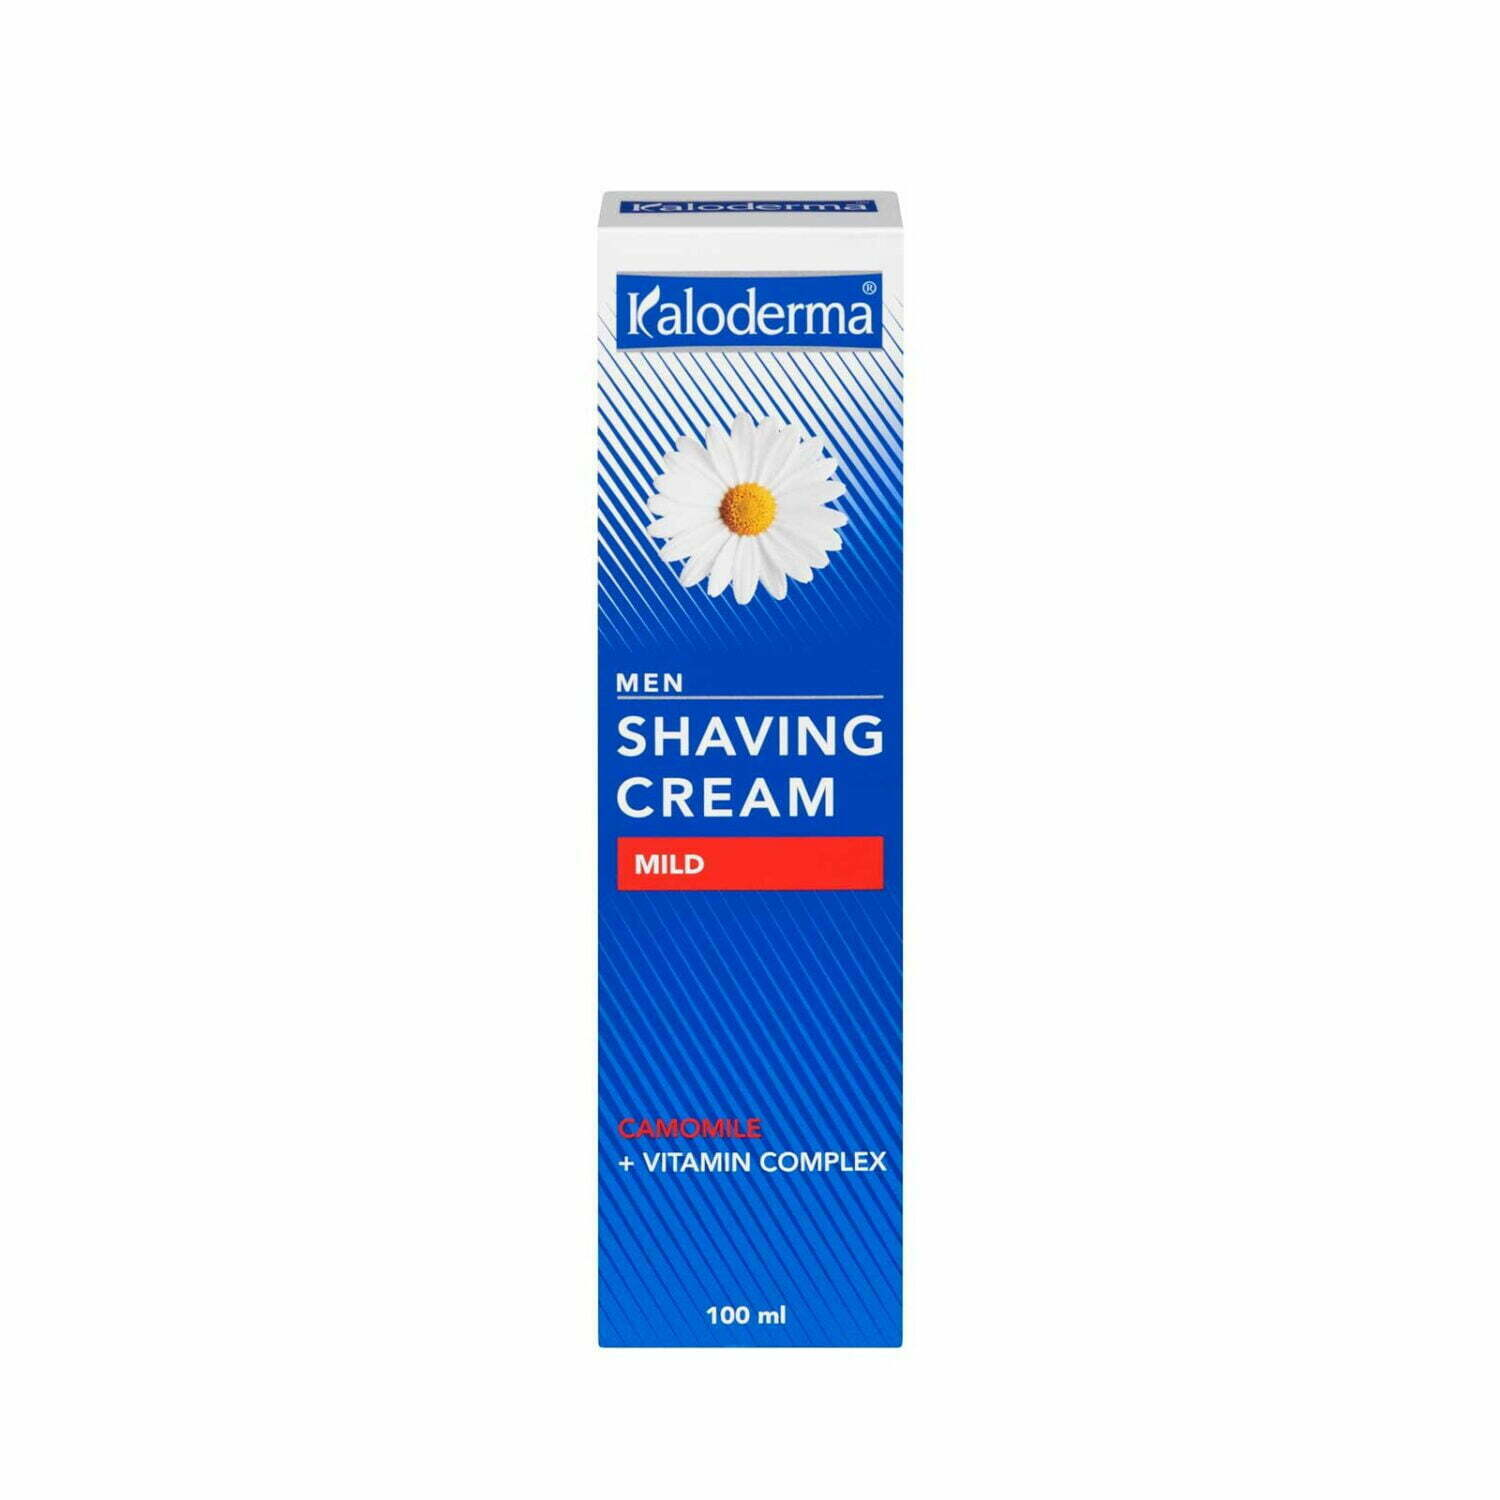 Kaloderma Shaving Cream